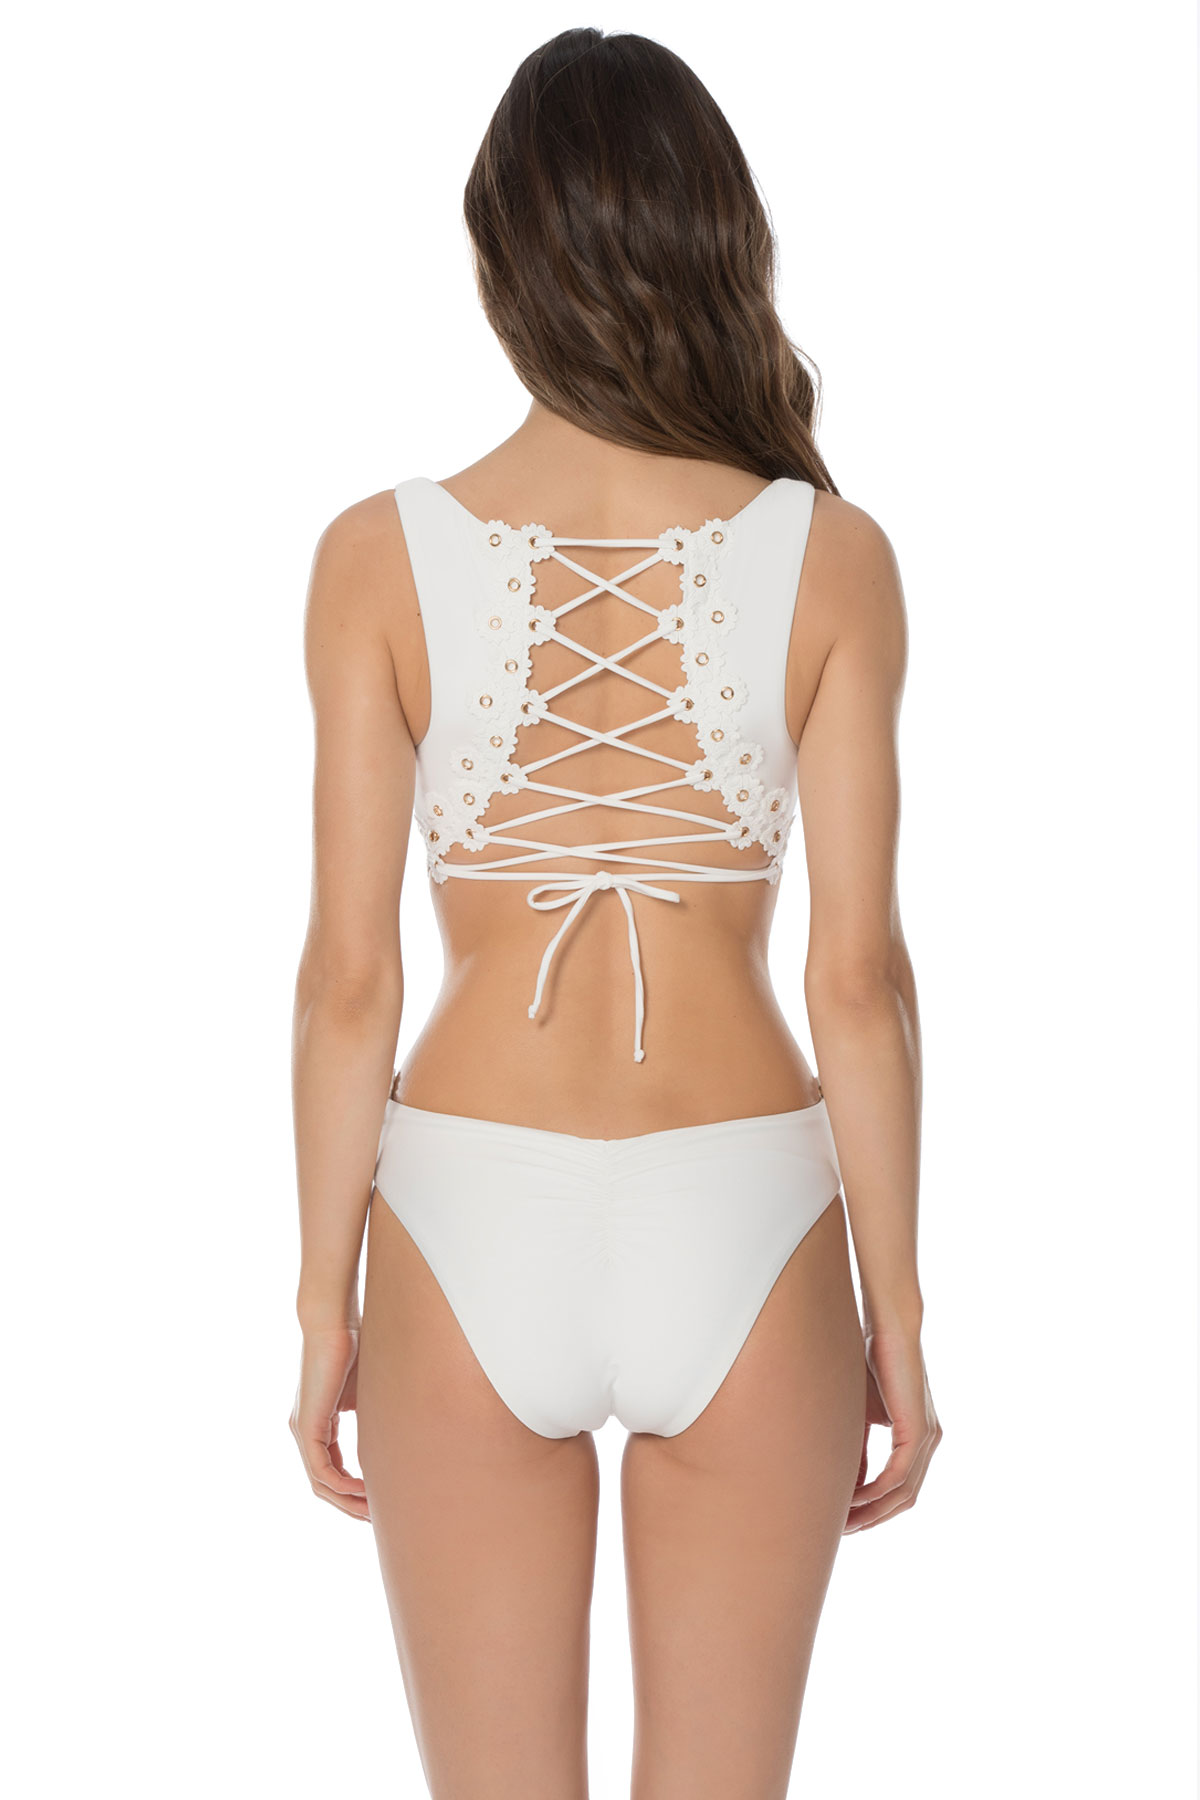 Lace-Up Over The Shoulder One Piece Swimsuit - White 5